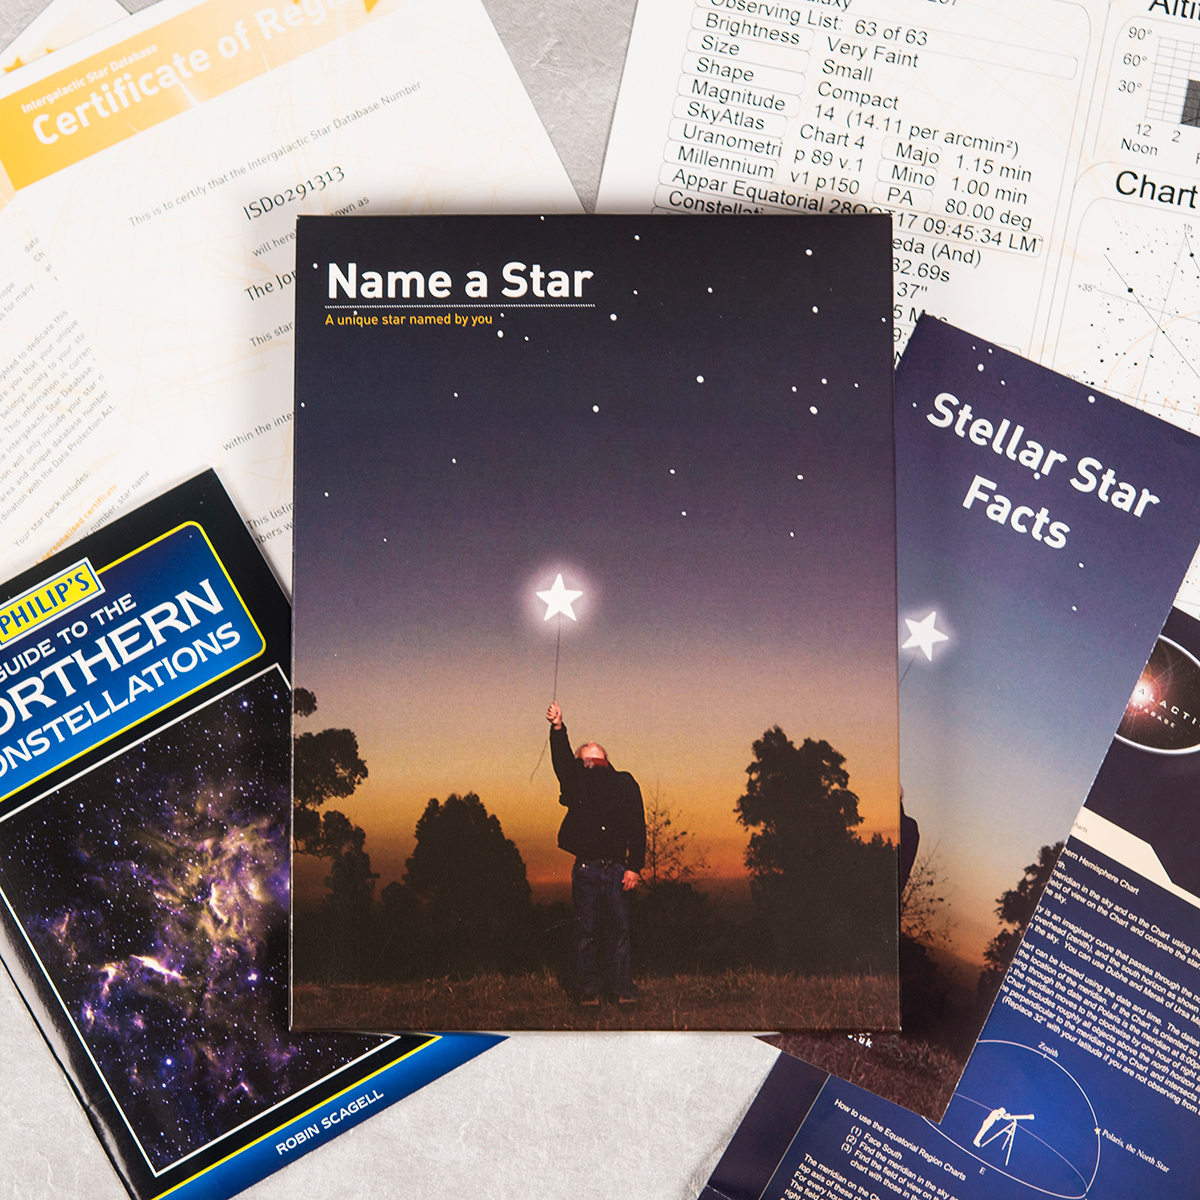 Name a Star - For A 21st Birthday - 21st gift